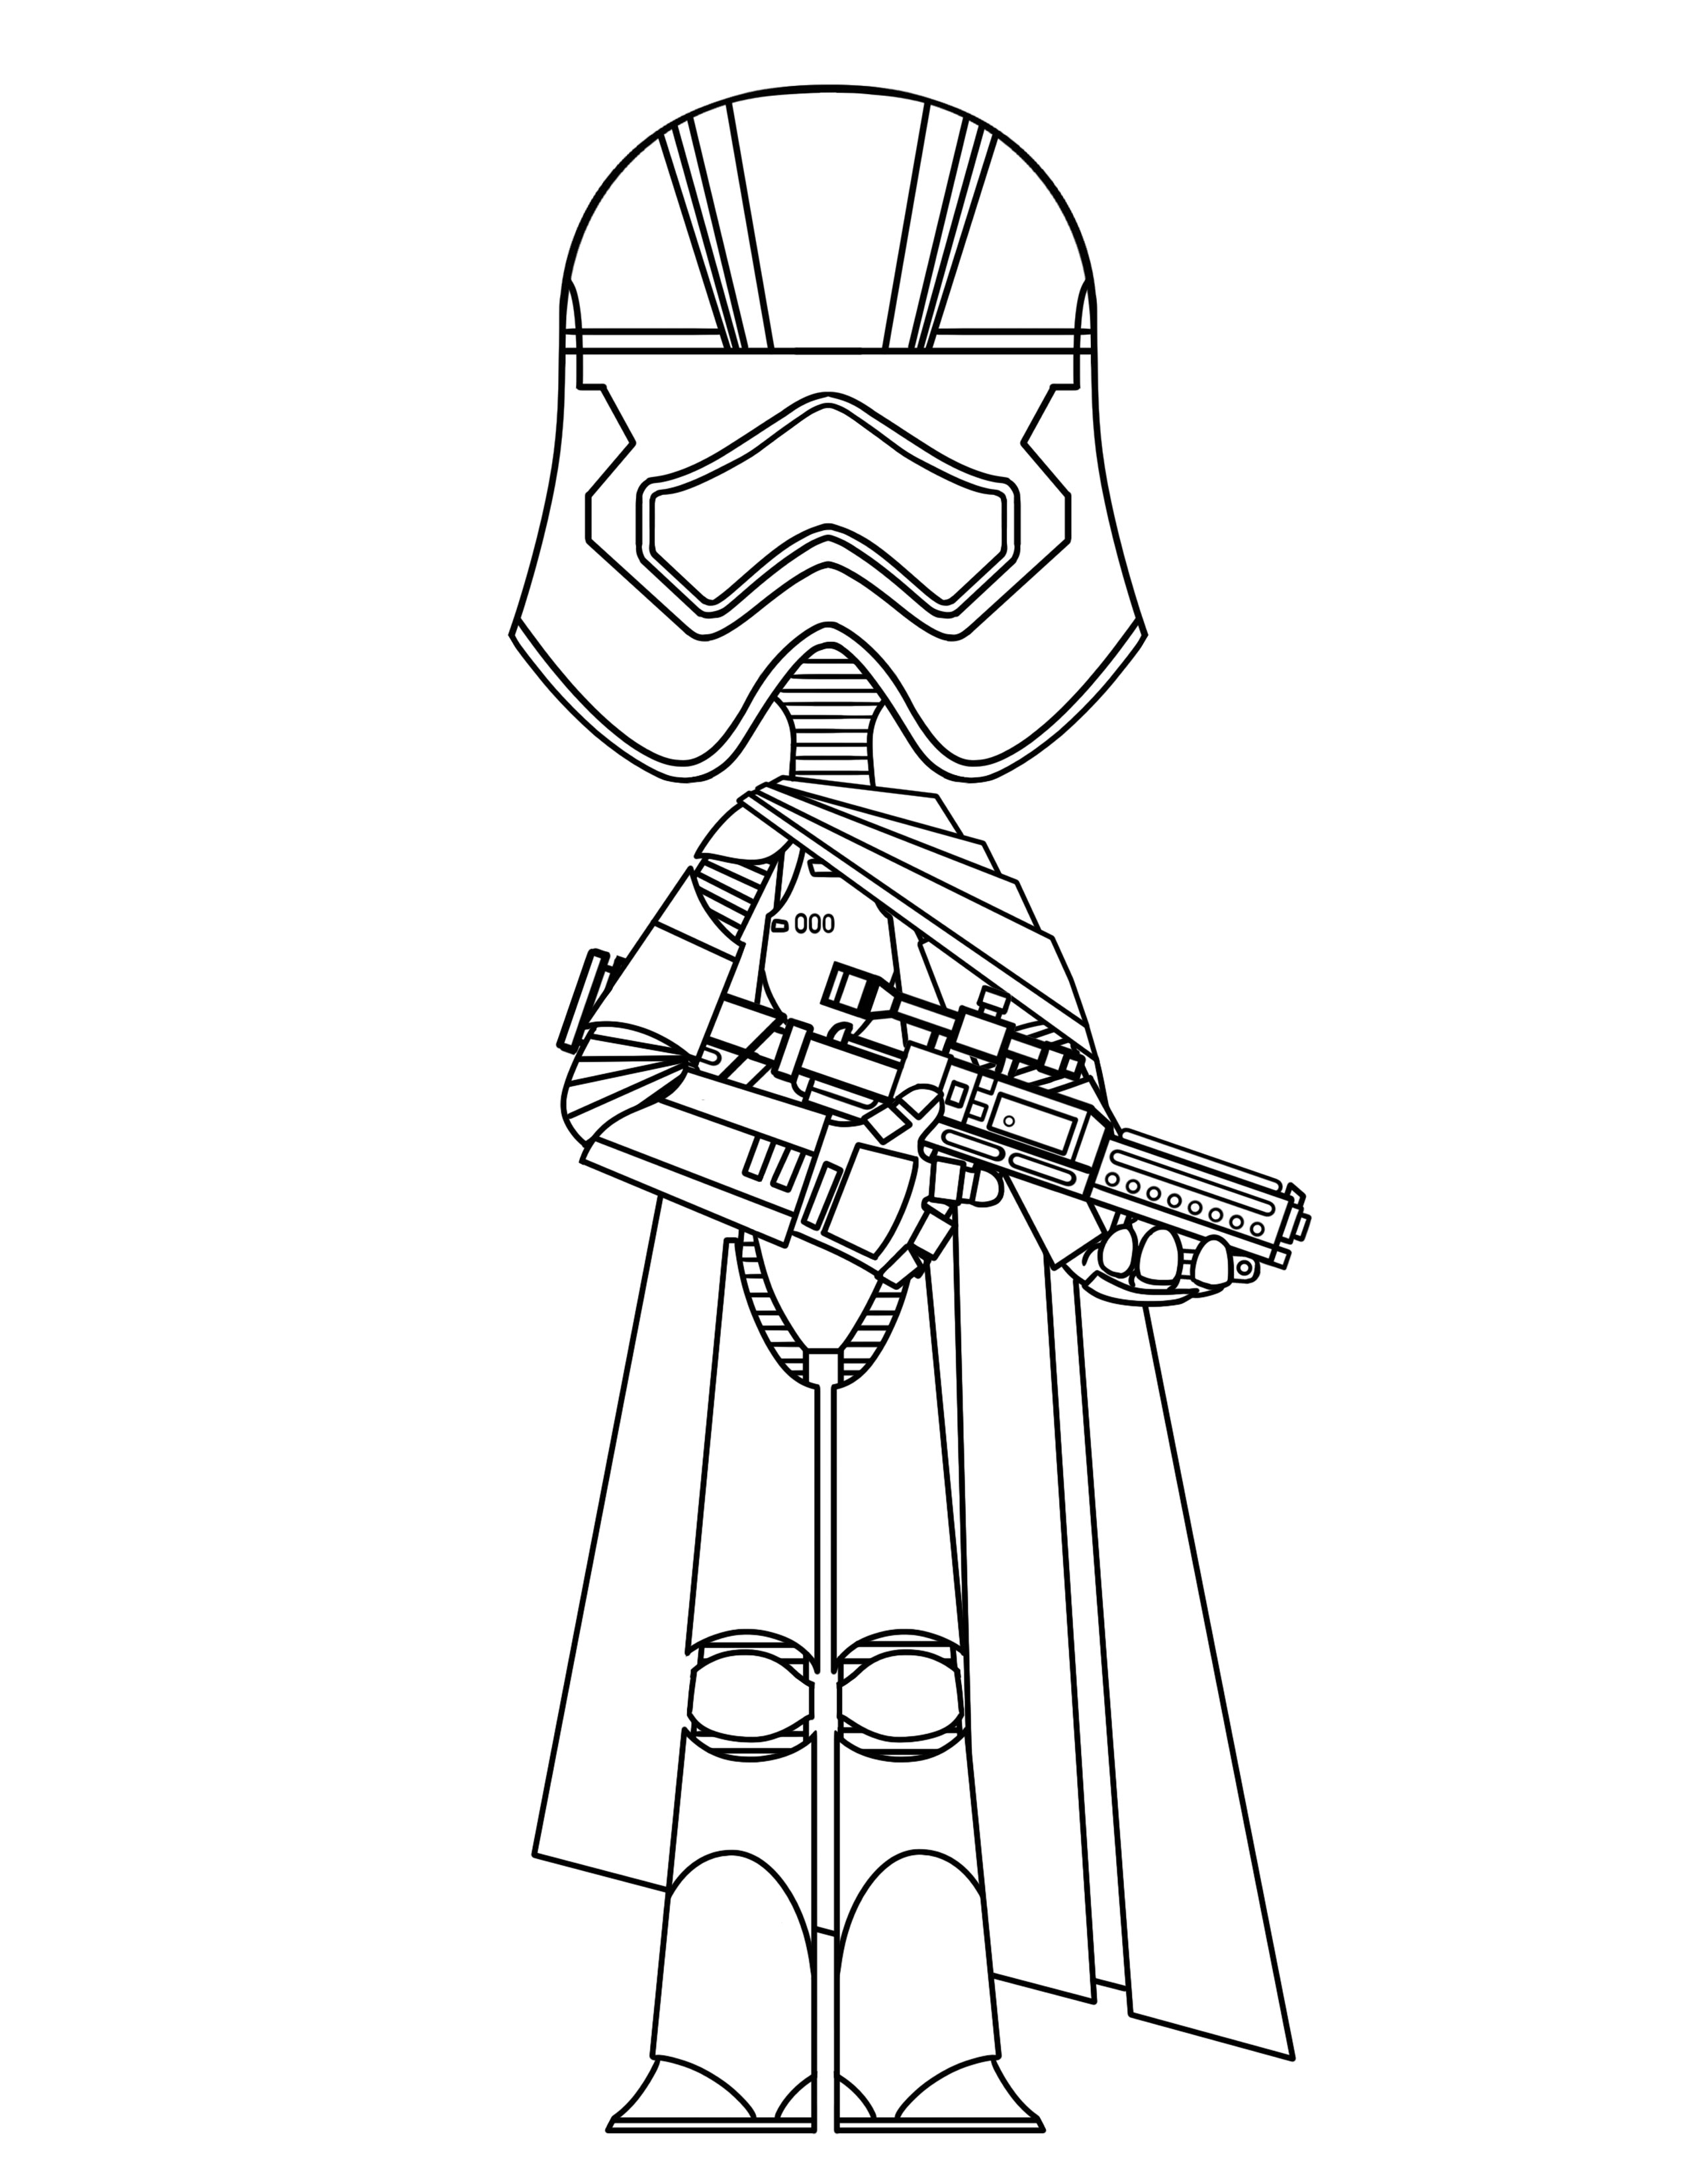 star wars coloring page star wars free to color for kids star wars kids coloring page star coloring wars 1 1